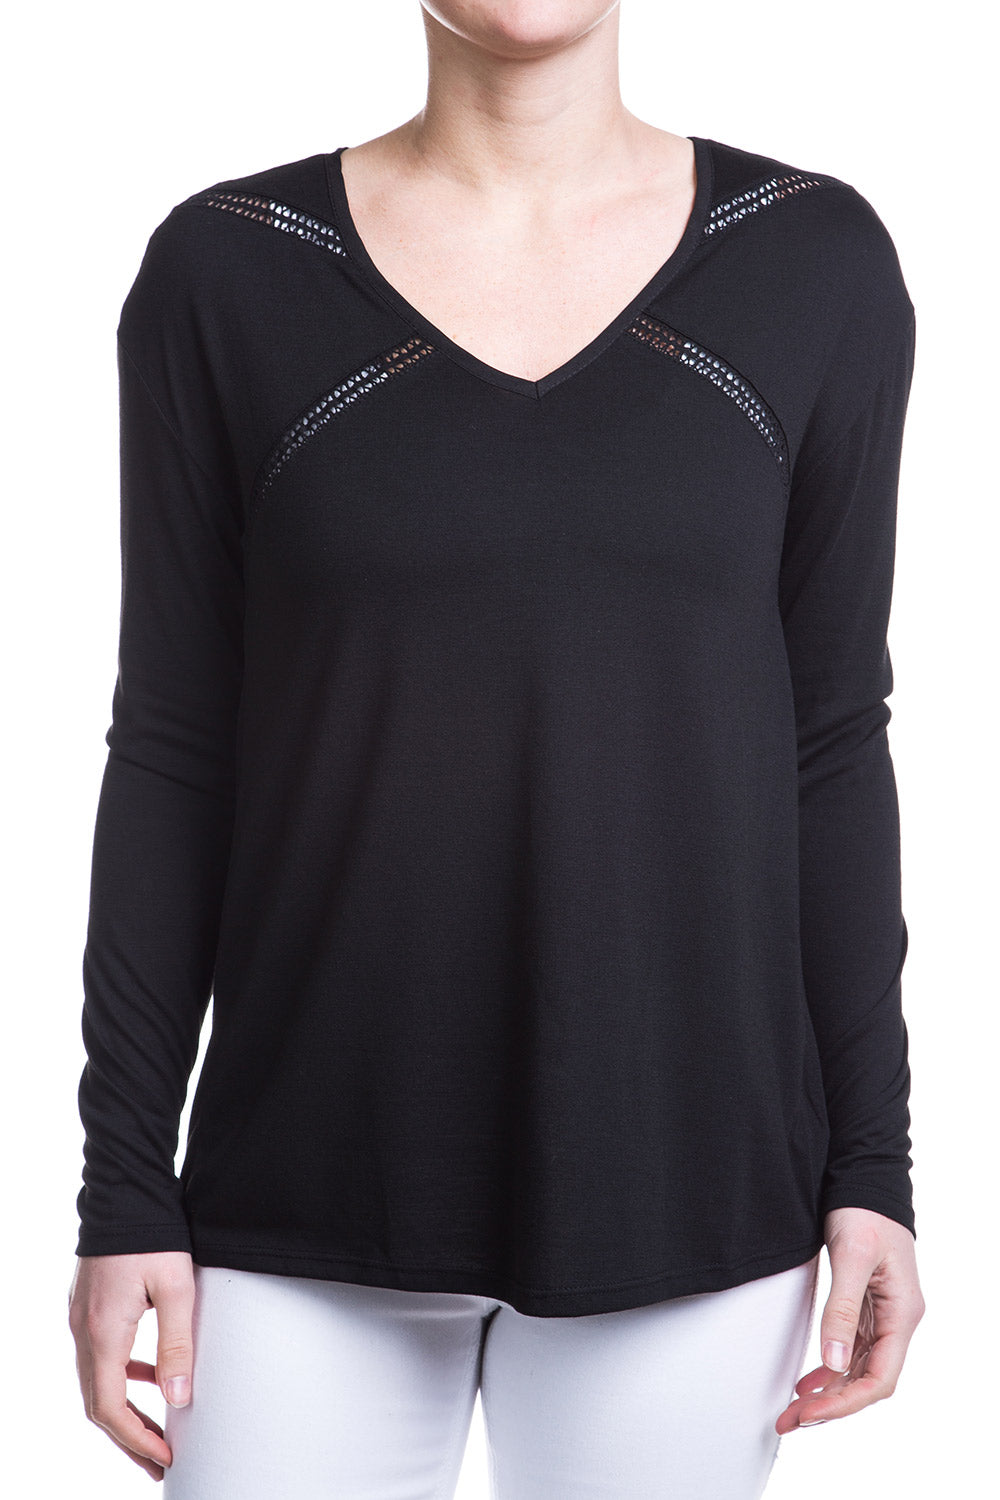 Type 4 In An Instant Top in Black